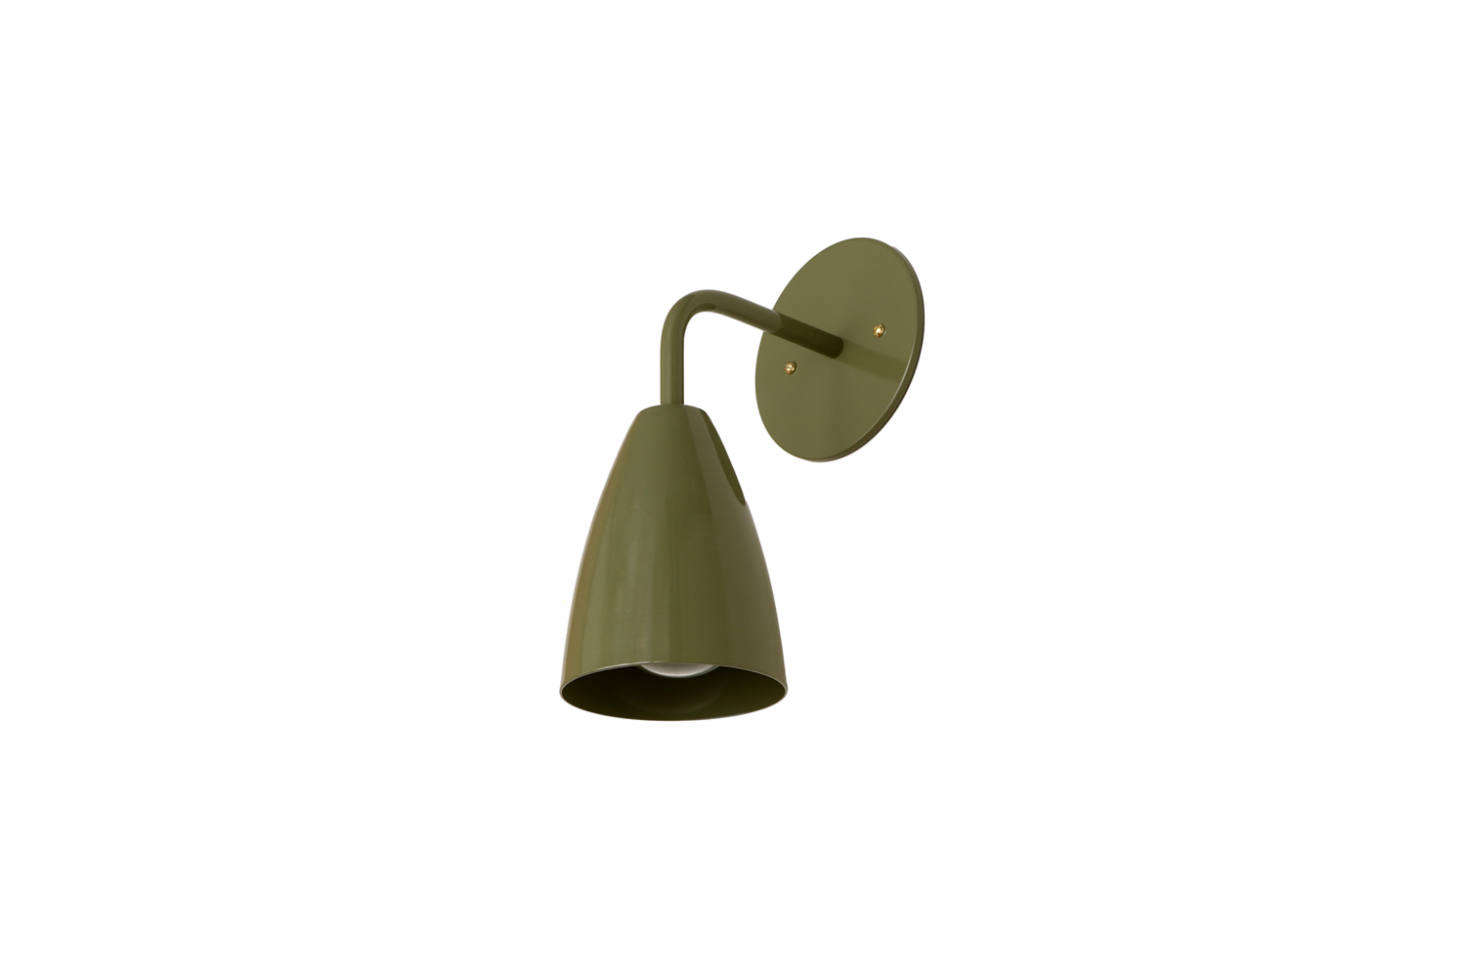 From OneFortyThree, the Shaded Sconce in Solid Colors (shown in Cactus) is $5 directly from OneFortyThree.